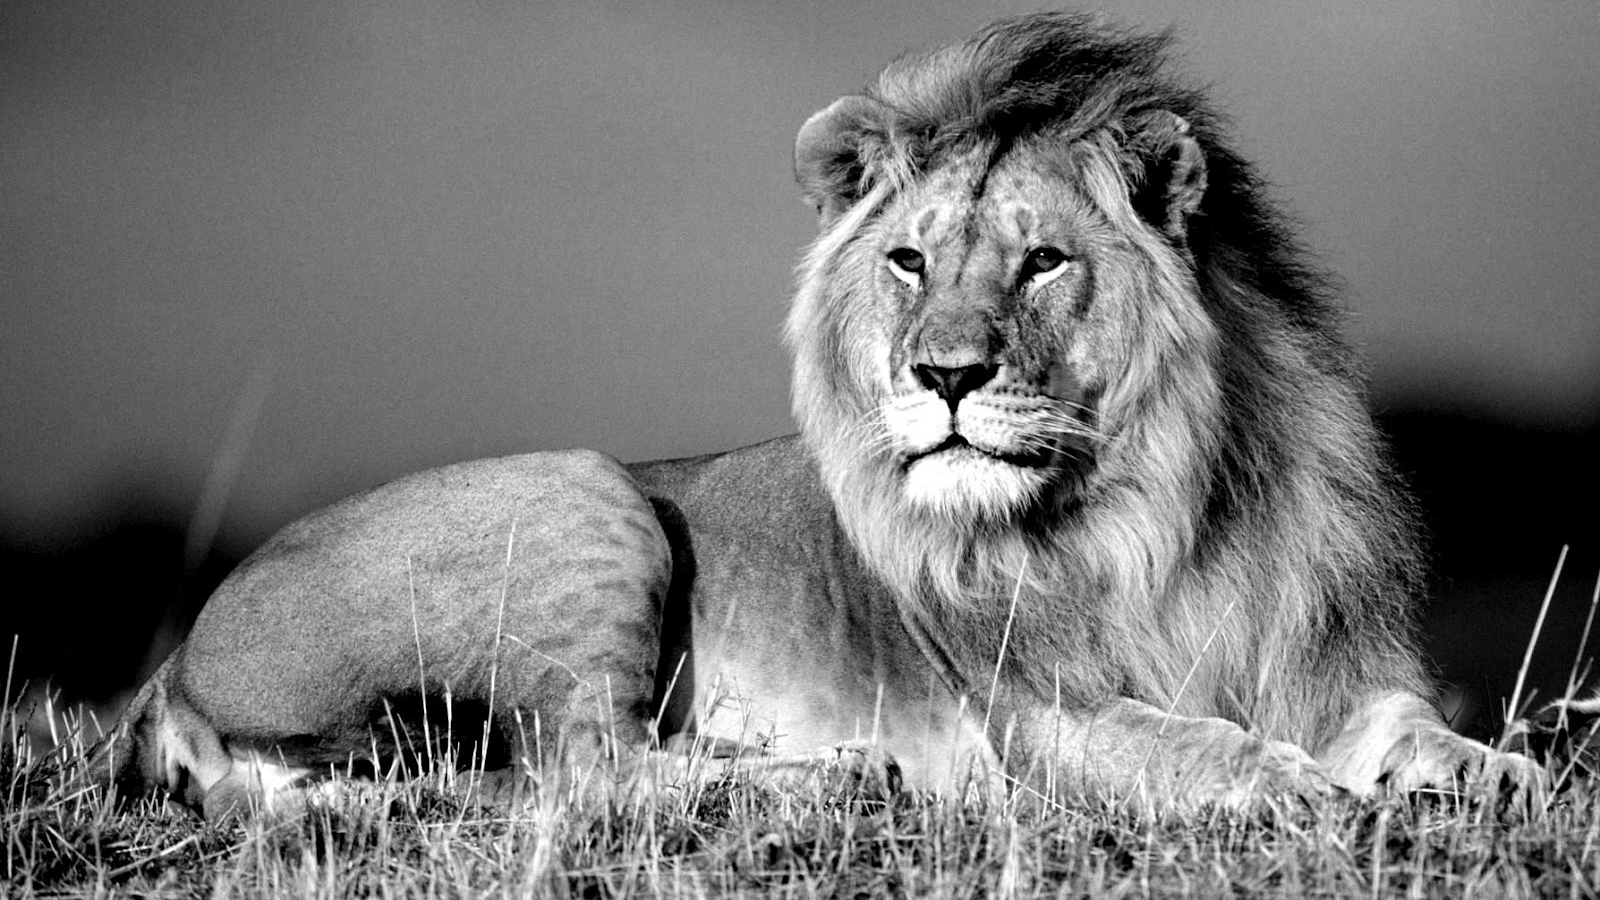 Free Download Jungle King Lion Wallpapers Black And White Photography 1600x954 For Your Desktop Mobile Tablet Explore 43 Black And White Lion Wallpaper White Lion Wallpaper Desktop Beautiful White